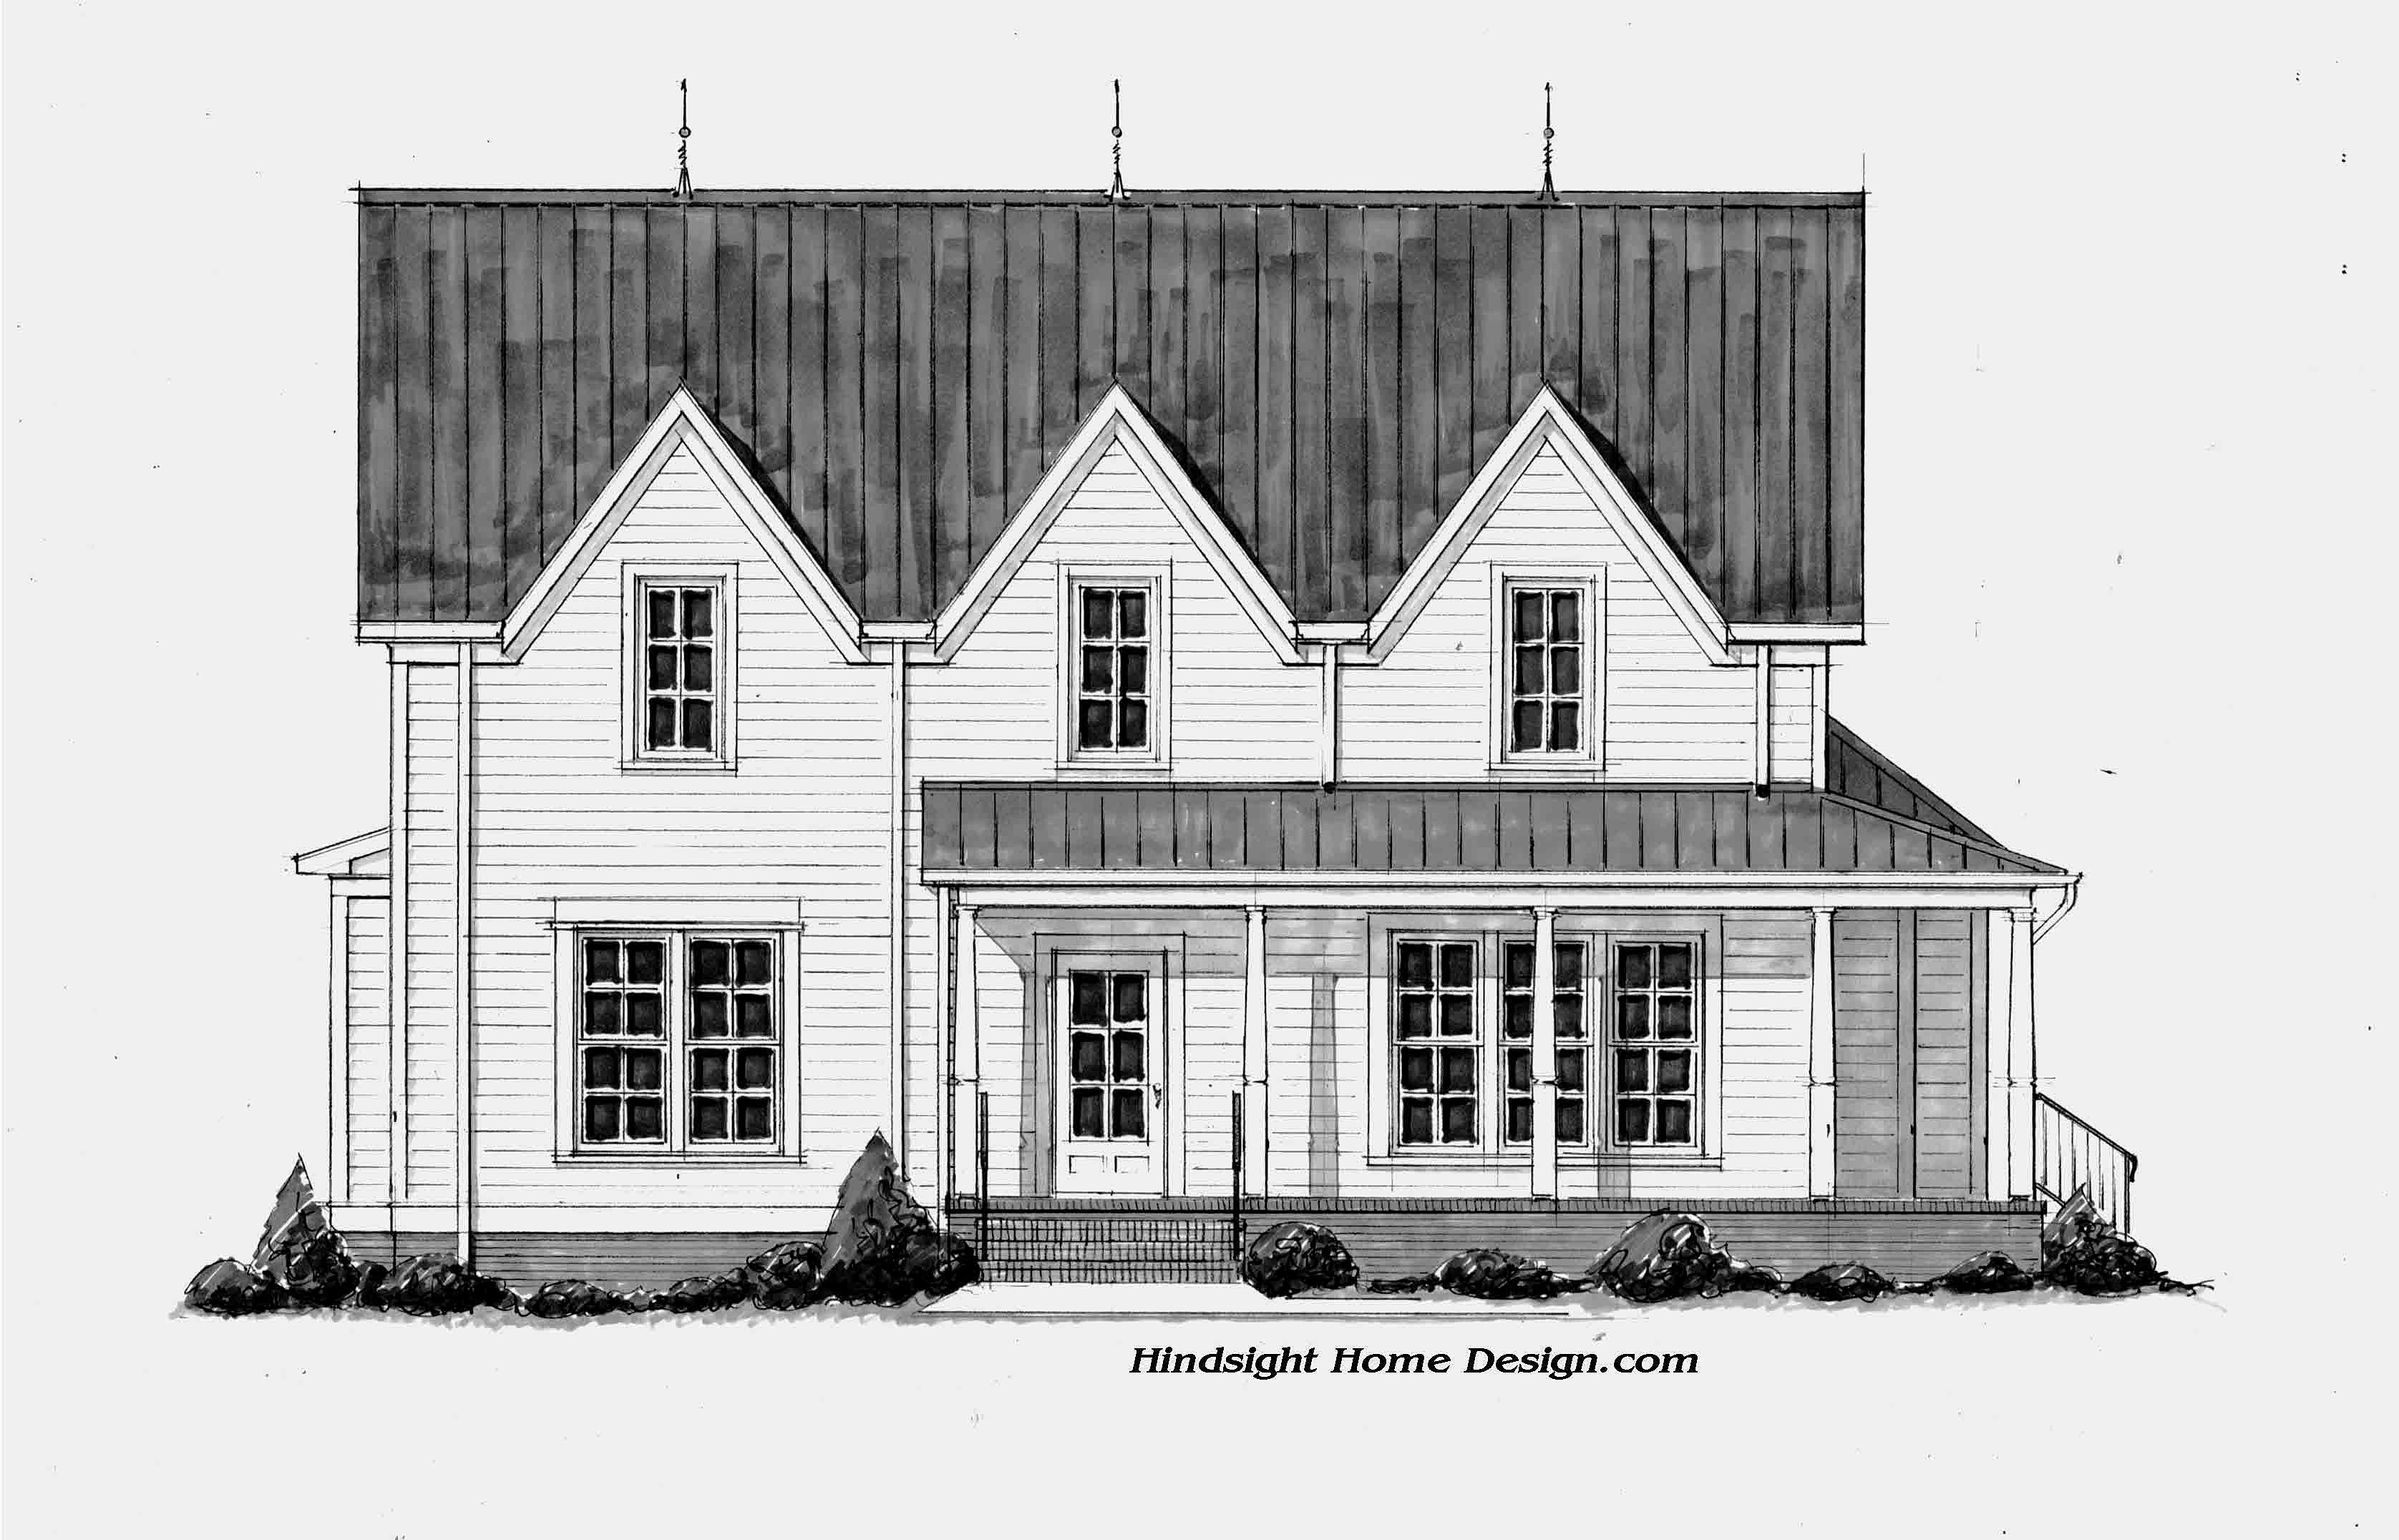 Hindsight home design llc nashville house plans for Home designs llc